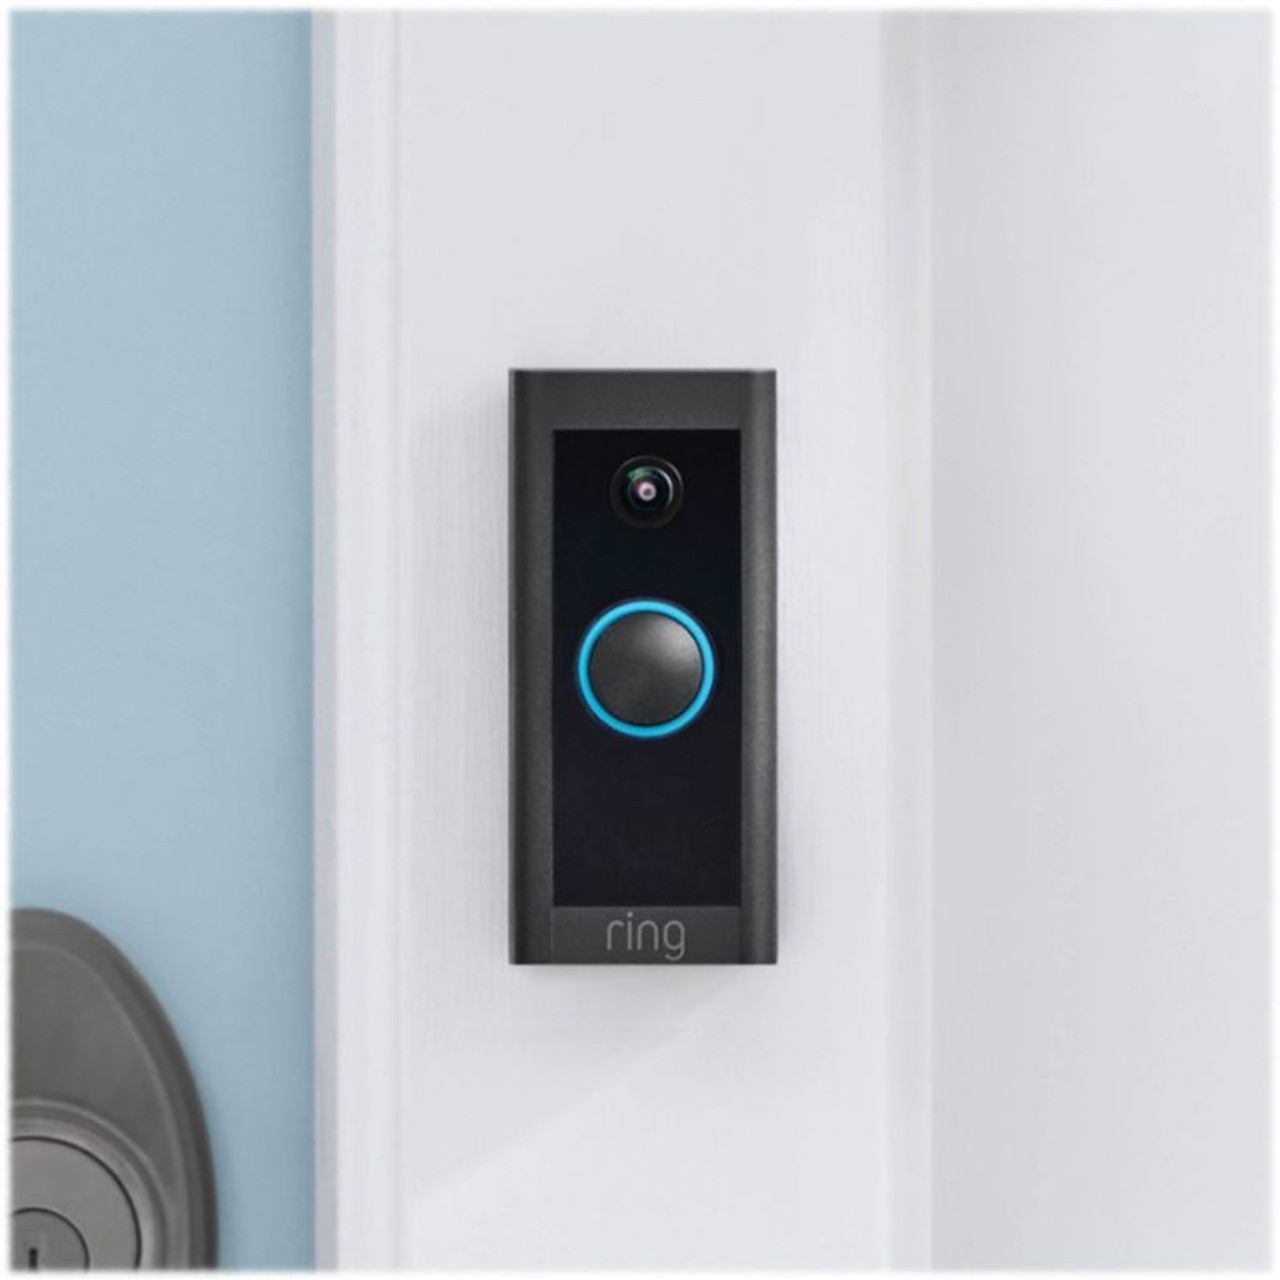 Ring Wired Wi-Fi Video Doorbell - Black